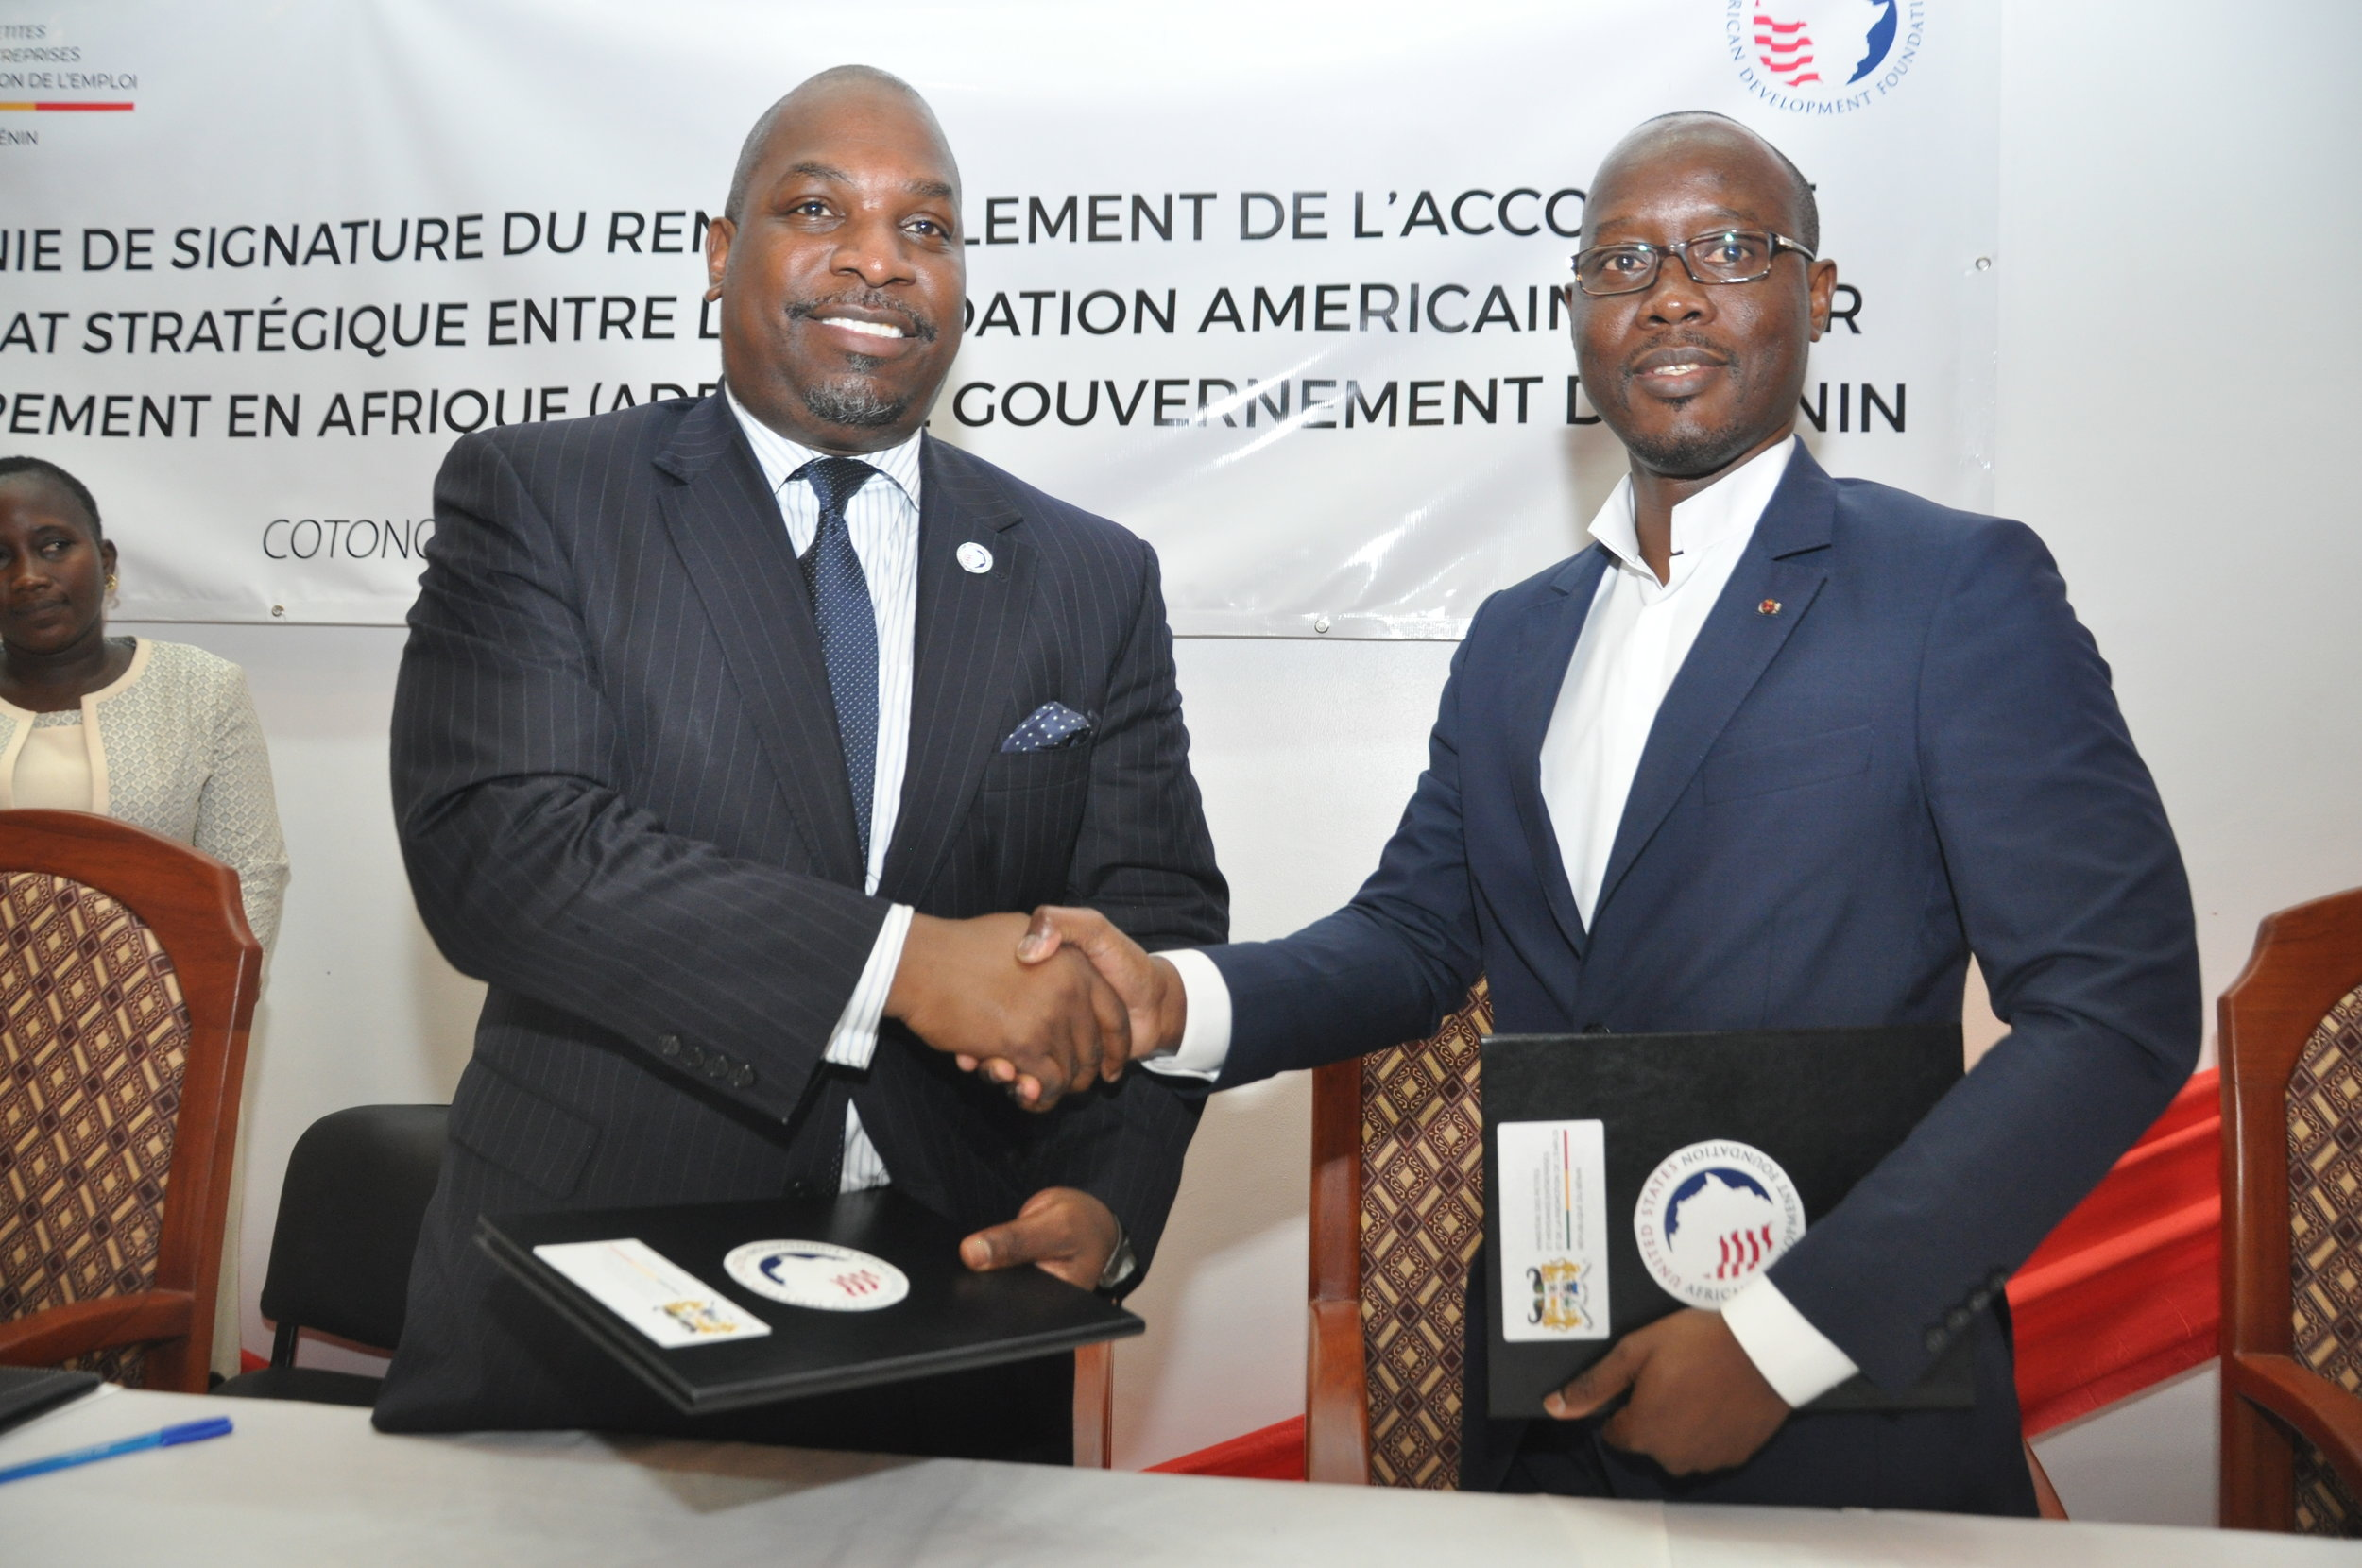 The U.S. African Development Foundation (USADF) and the Government of Benin doubled their commitment to local enterprise development in Benin, resulting in a $10 million co-funding agreement.